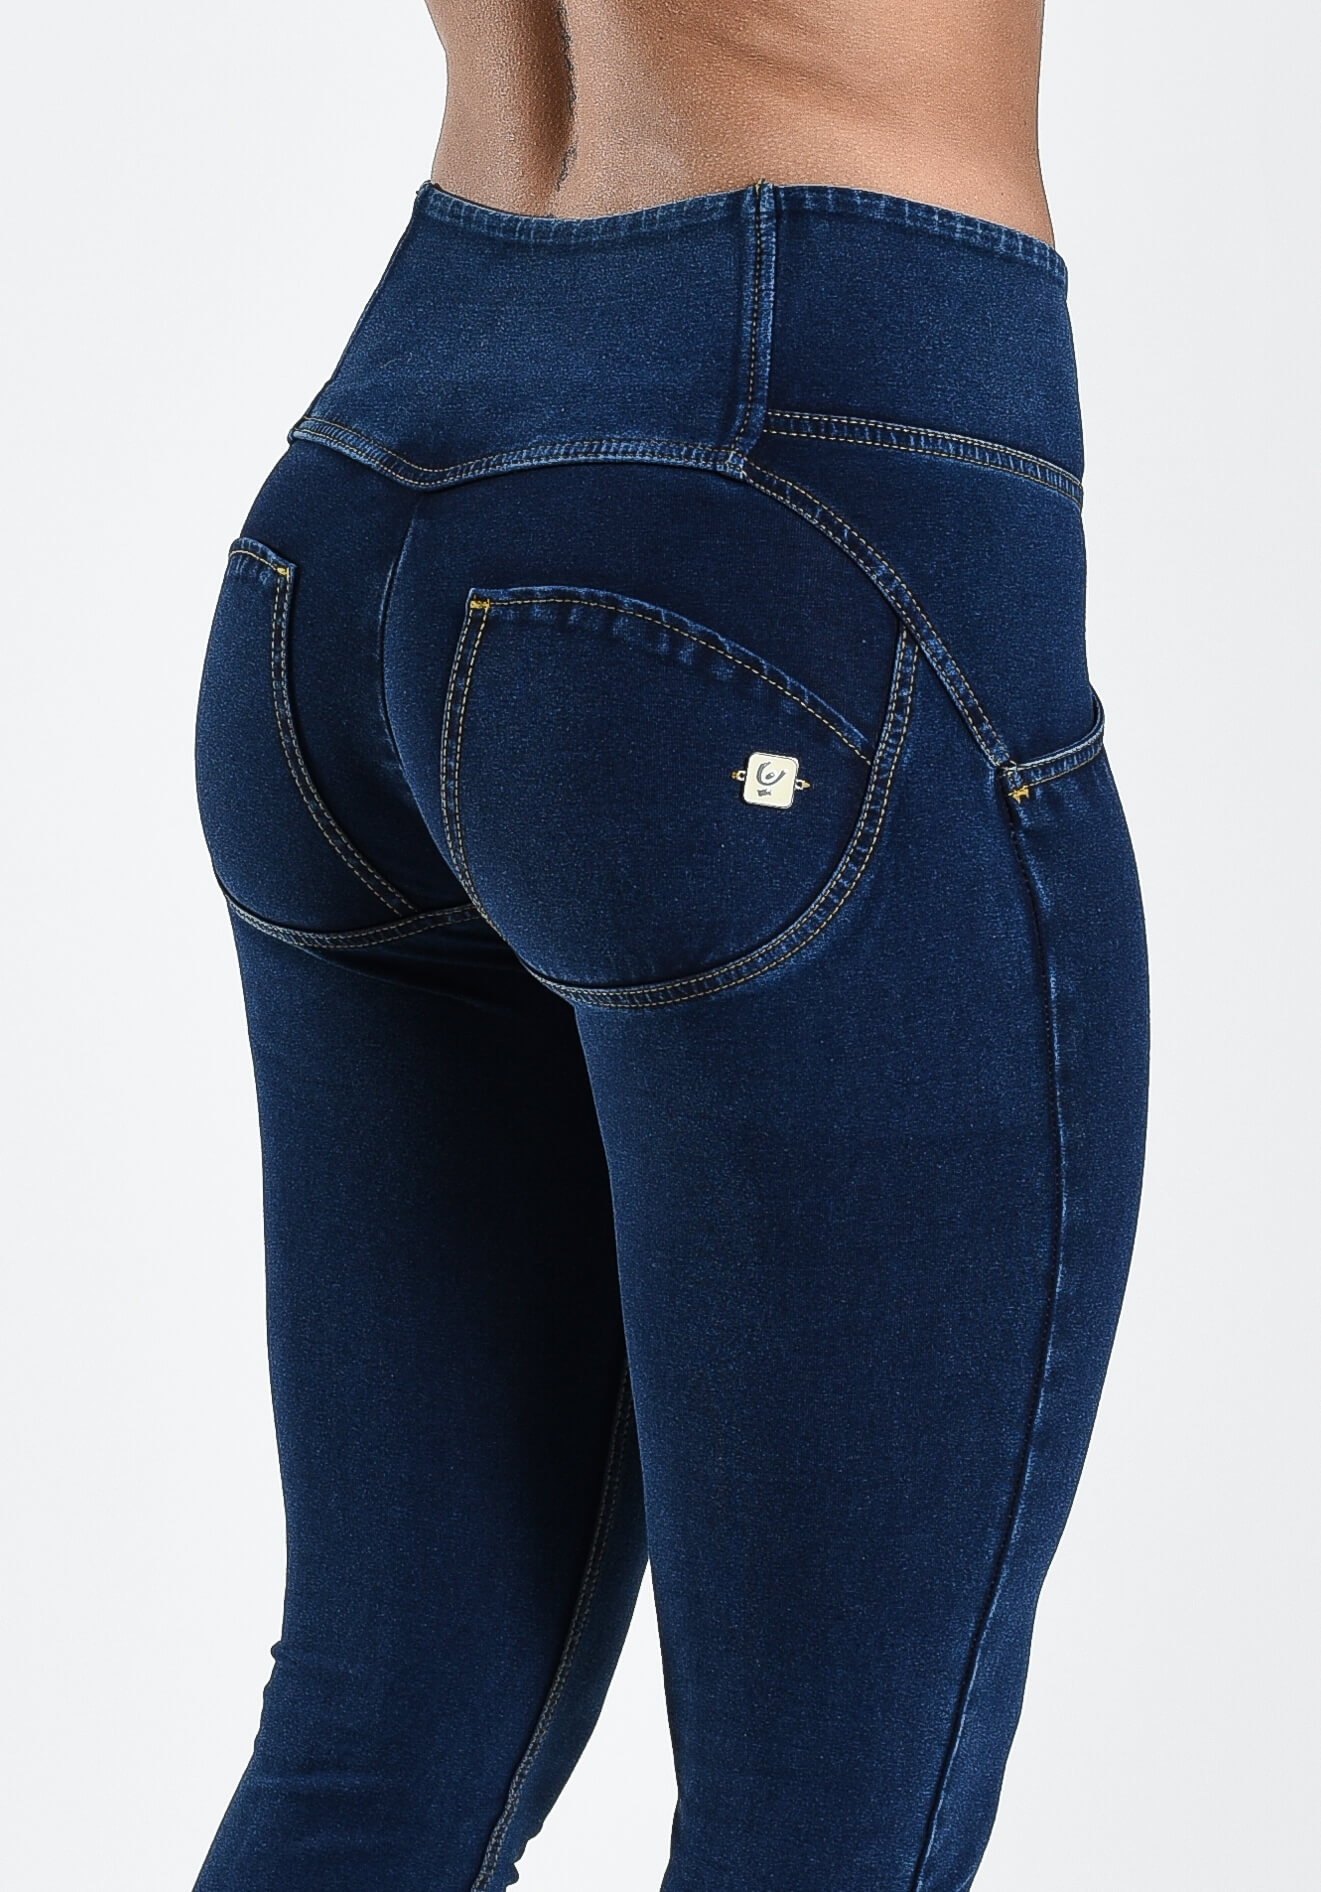 WR.UP® Denim Shaping Effect - Mid/High Waist